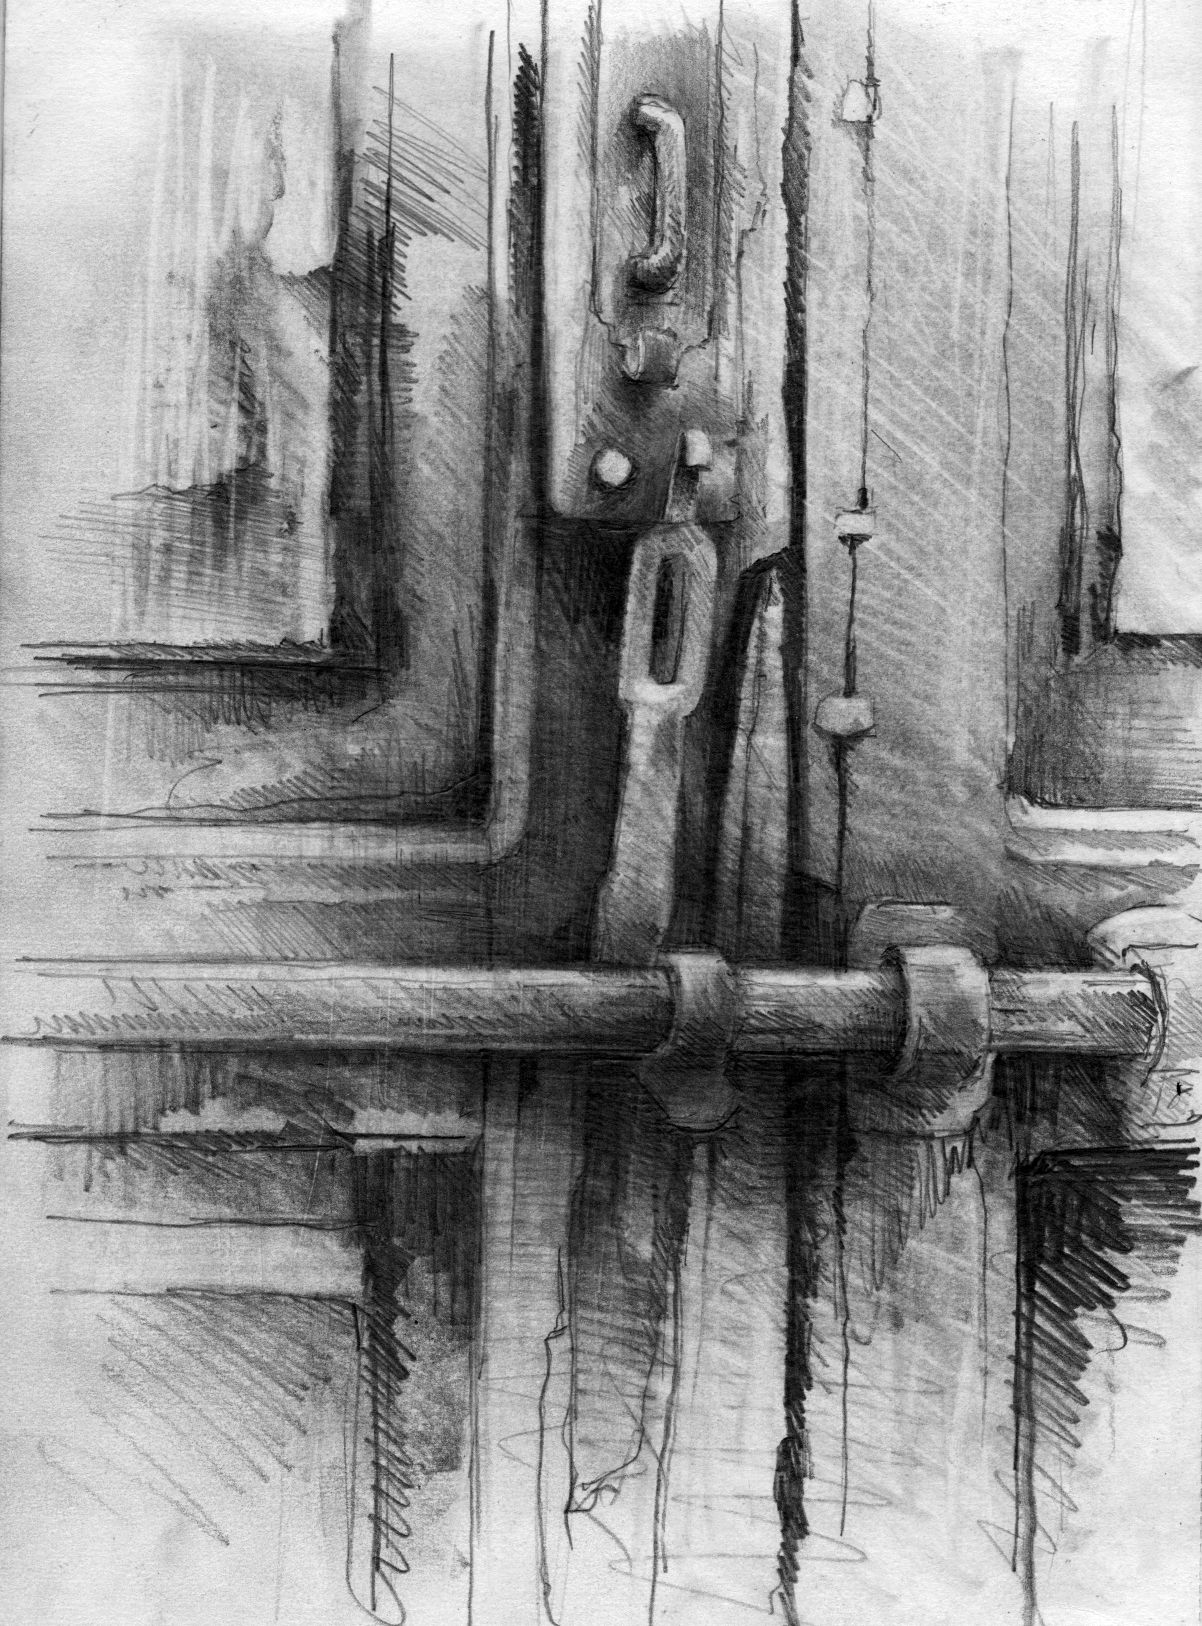 Door pencil drawing - Explore Charcoal Drawings Pencil Drawings And More